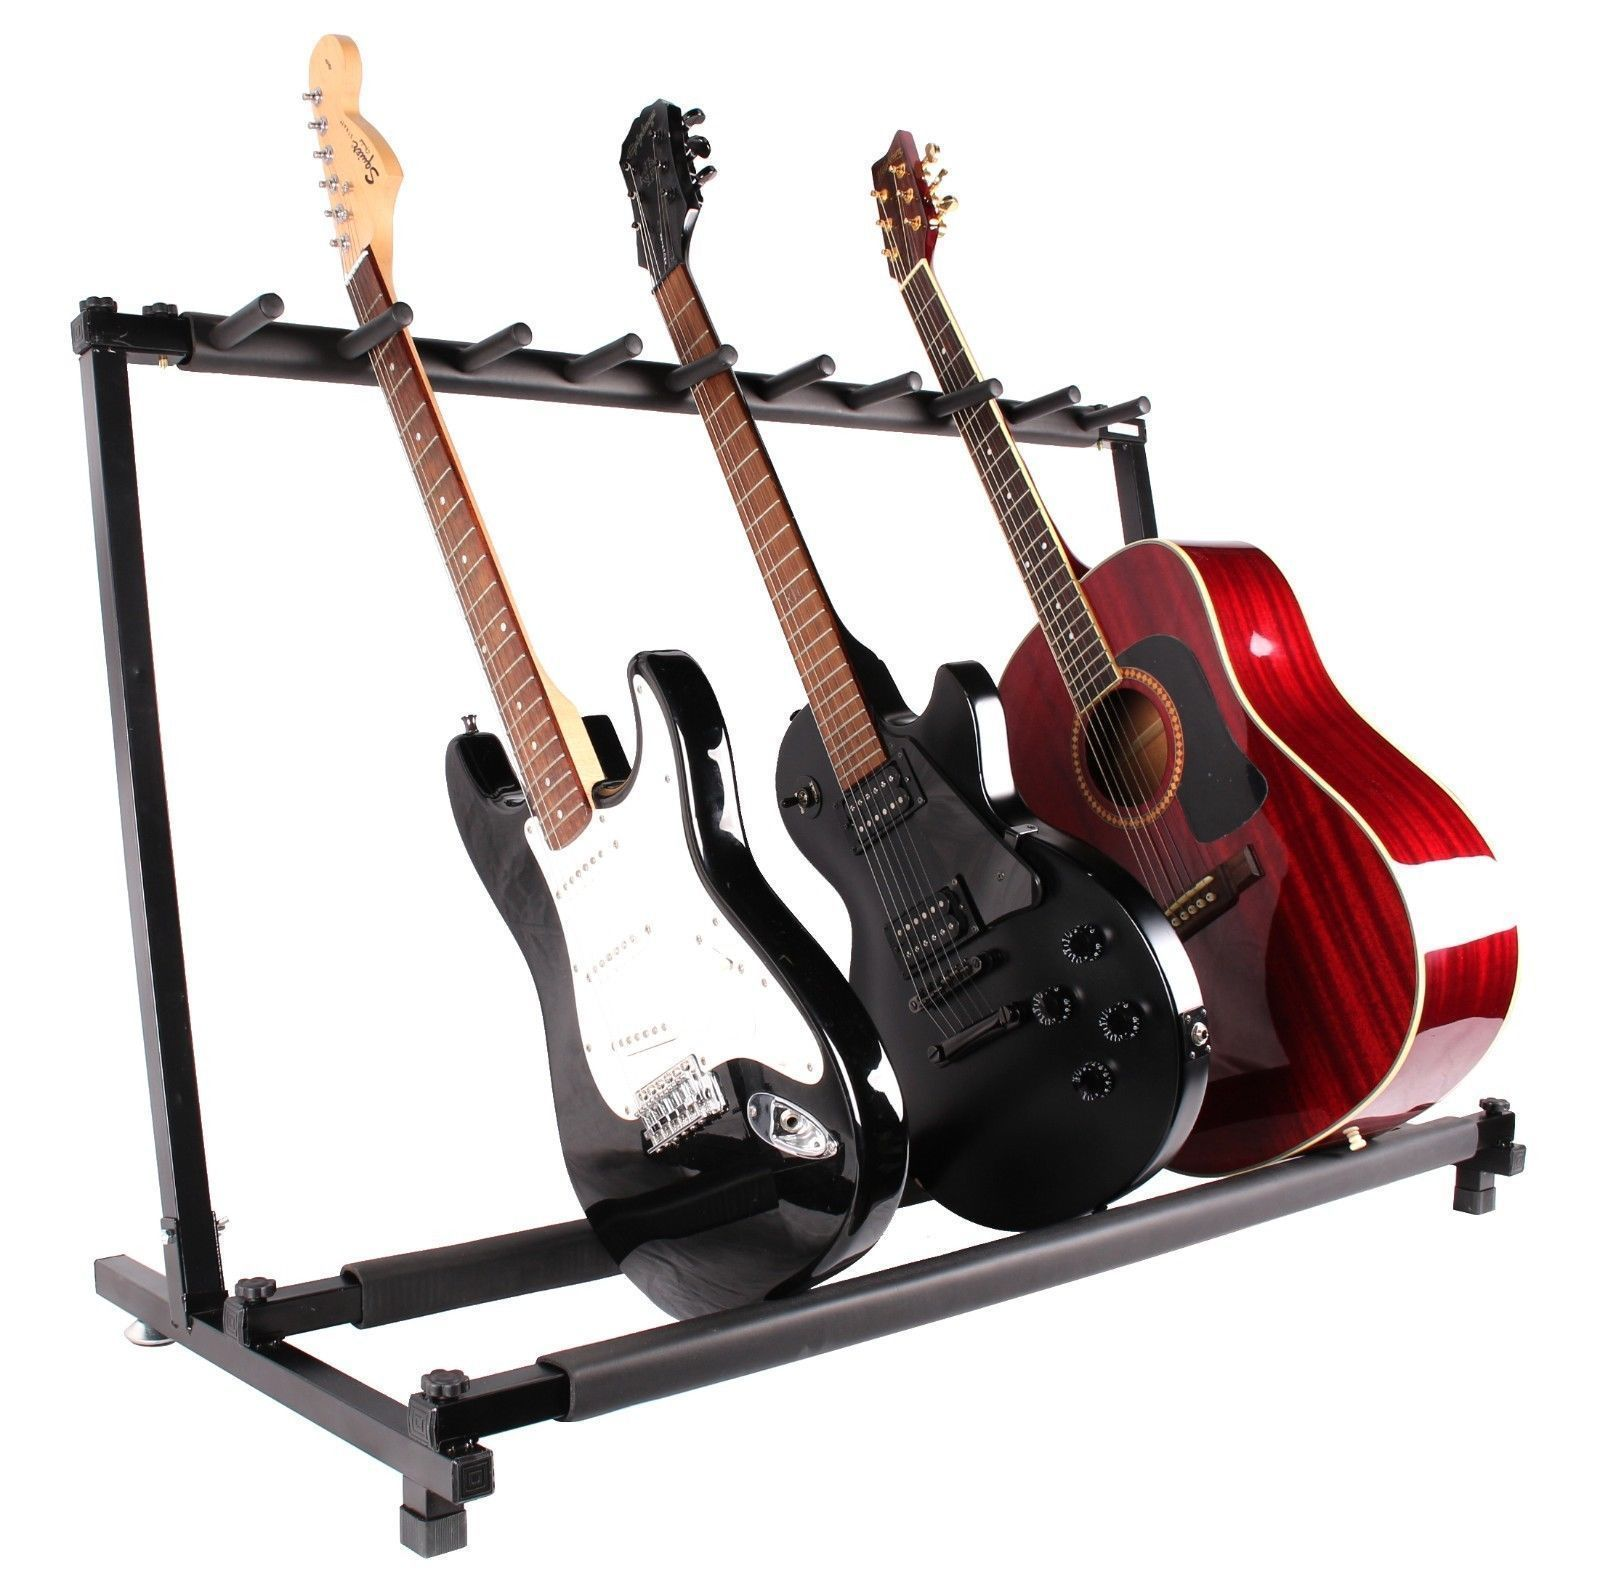 Guitar Stand 9 Holder Guitar Folding Stand Rack Band Stage Bass Acoustic Guitar Stand by sunrain